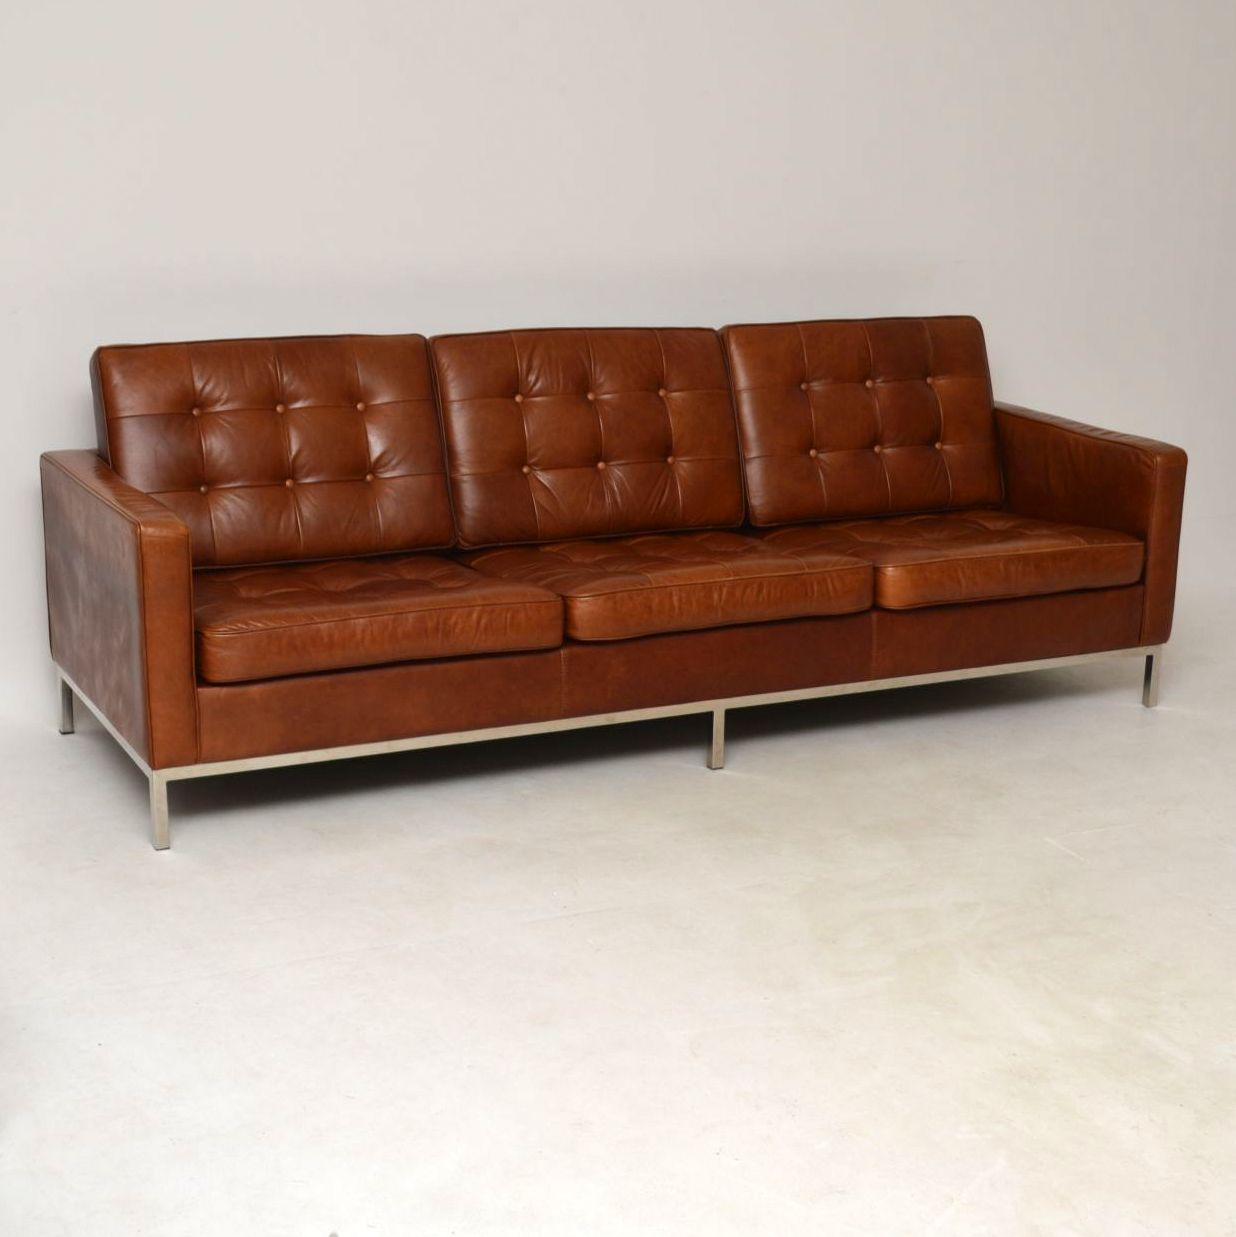 Florence Knoll Sessel Vintage Florence Knoll Leather Chrome Sofa